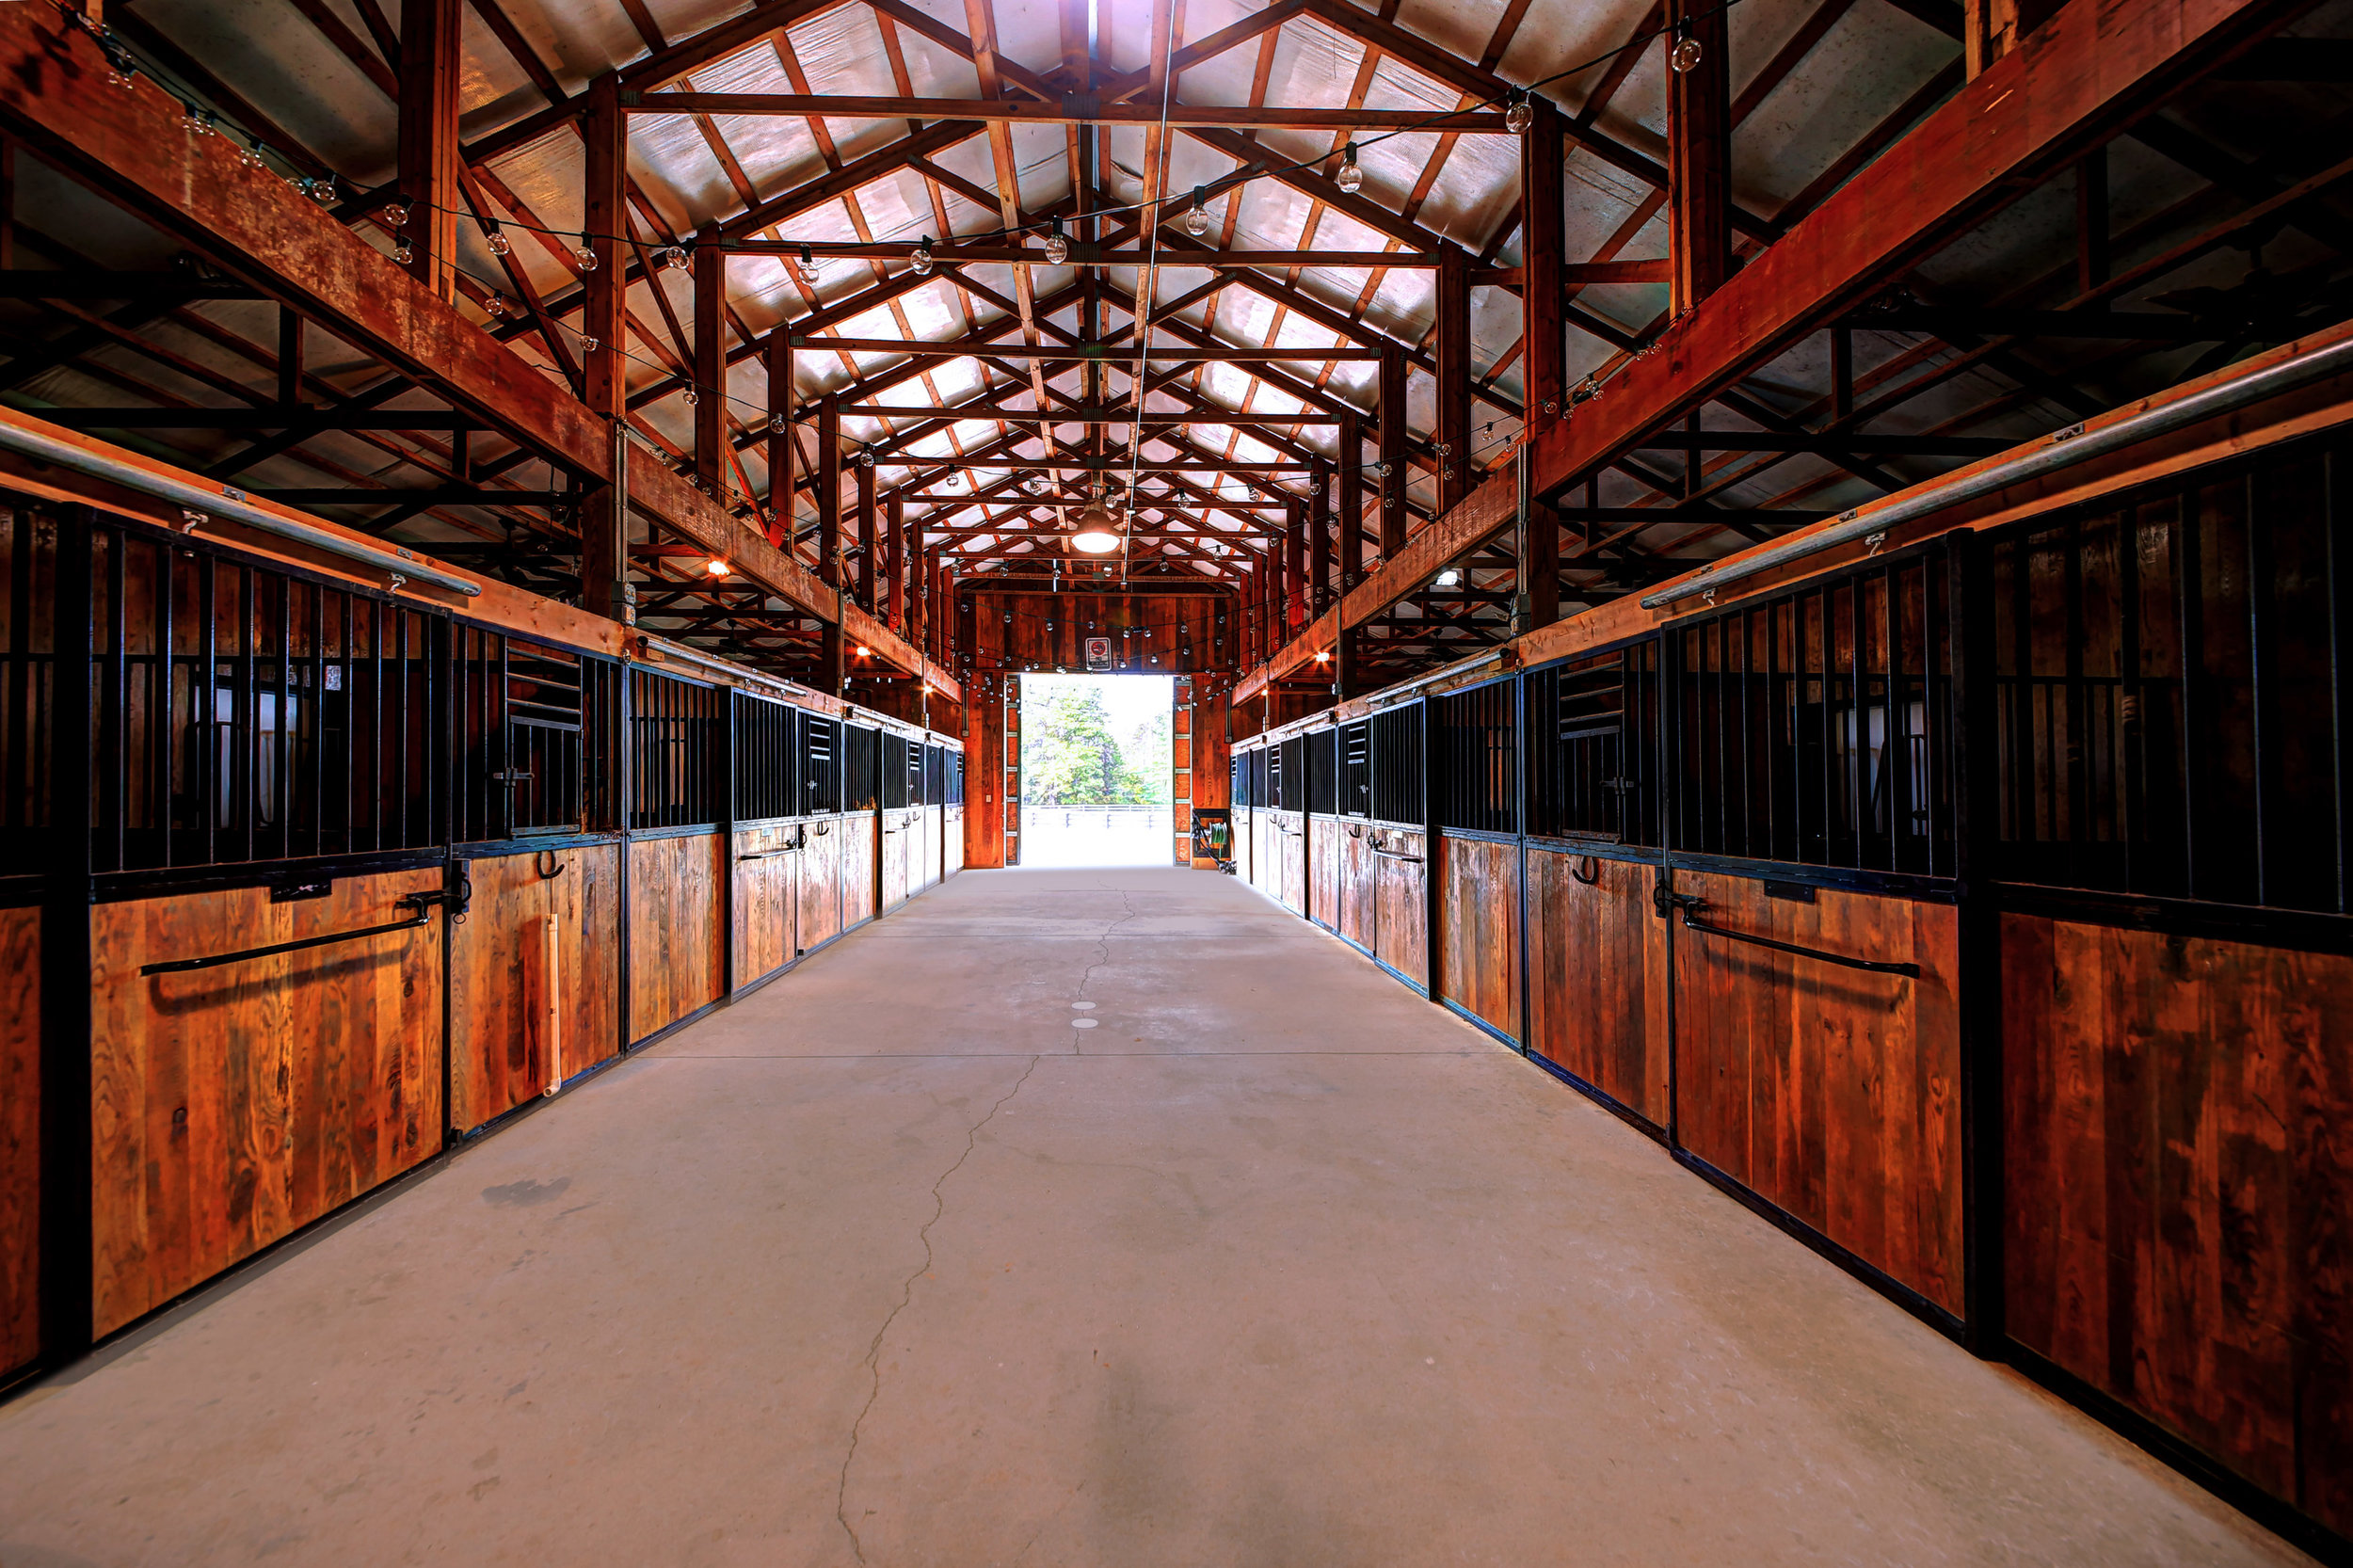 The CRC Stables includes a 16-stall barn.